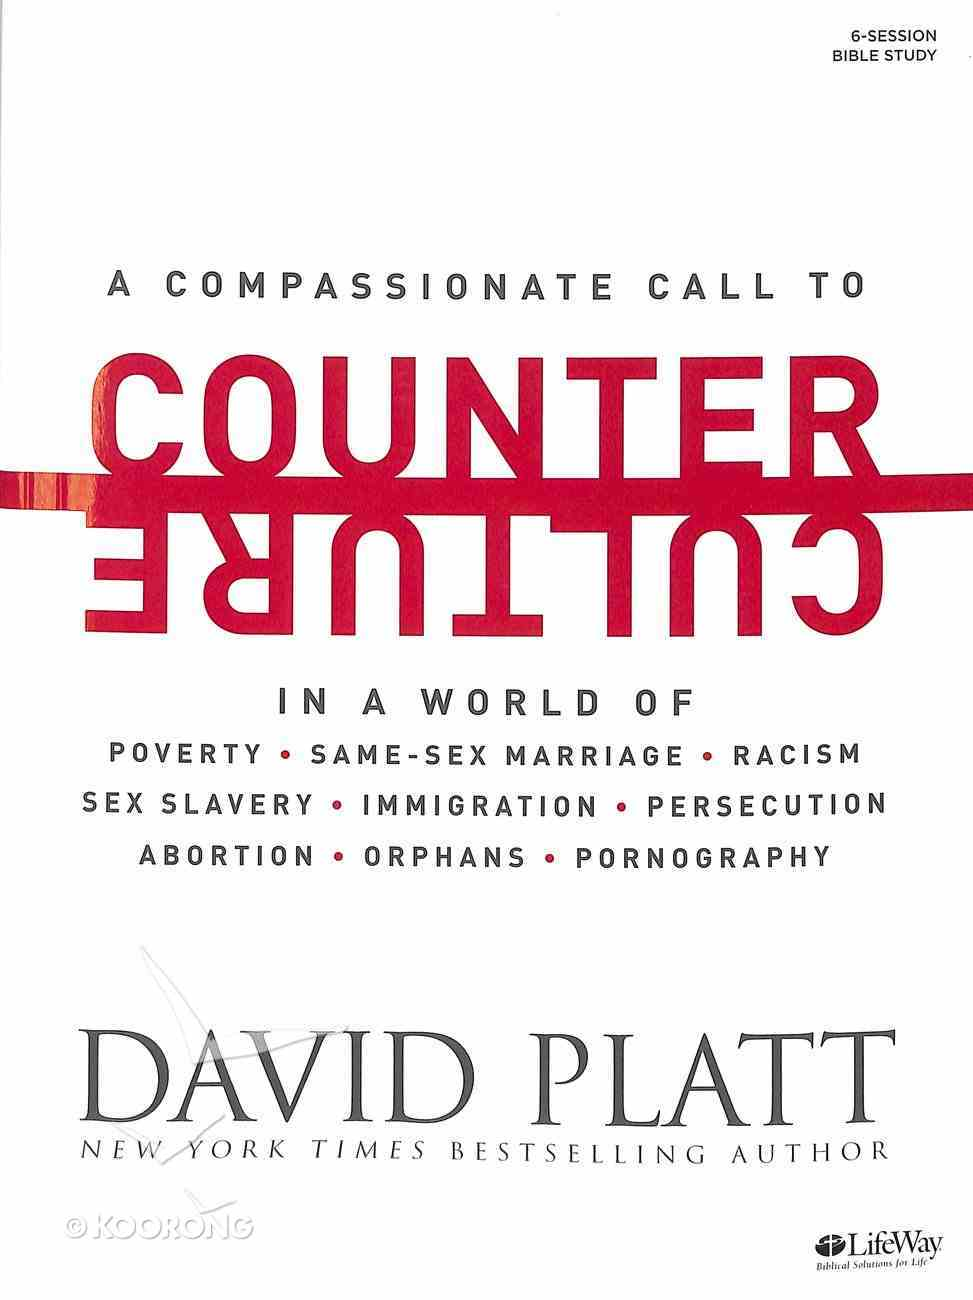 Counter Culture (Bible Study Book) Paperback